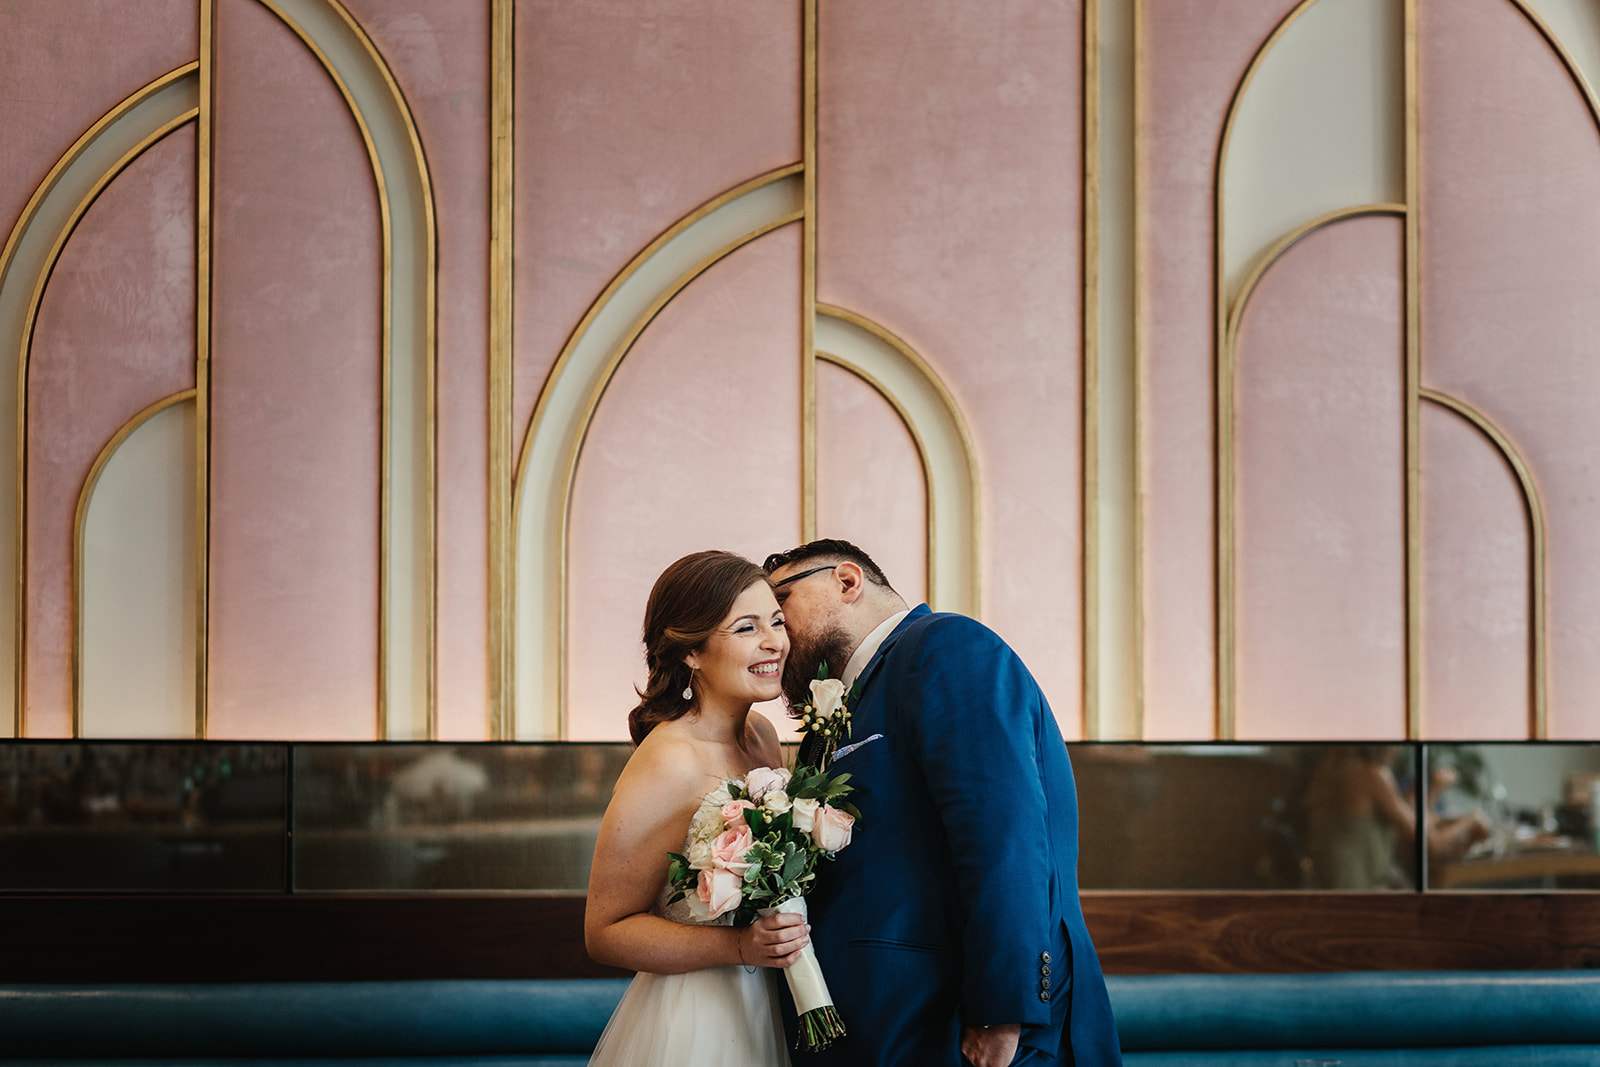 A Guide to Choosing a Wedding Photographer